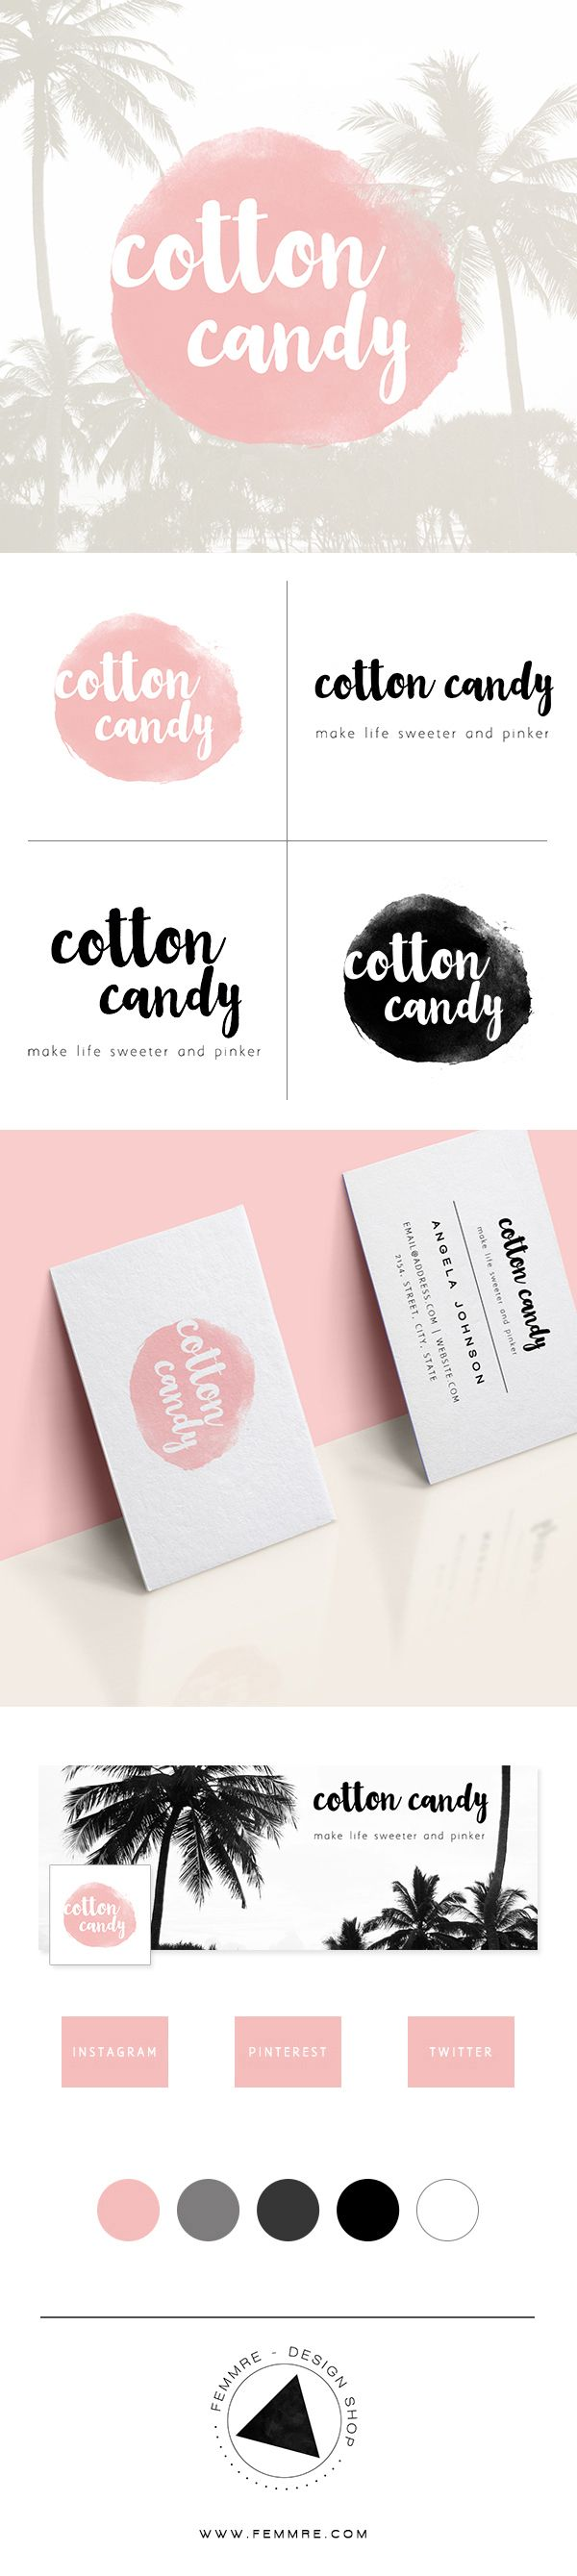 Cotton Candy Premade Brand Launch (sold only once) | FEMMRE - Chic Premade Branding | logo design, brand design, branding, premade brand, premade logo